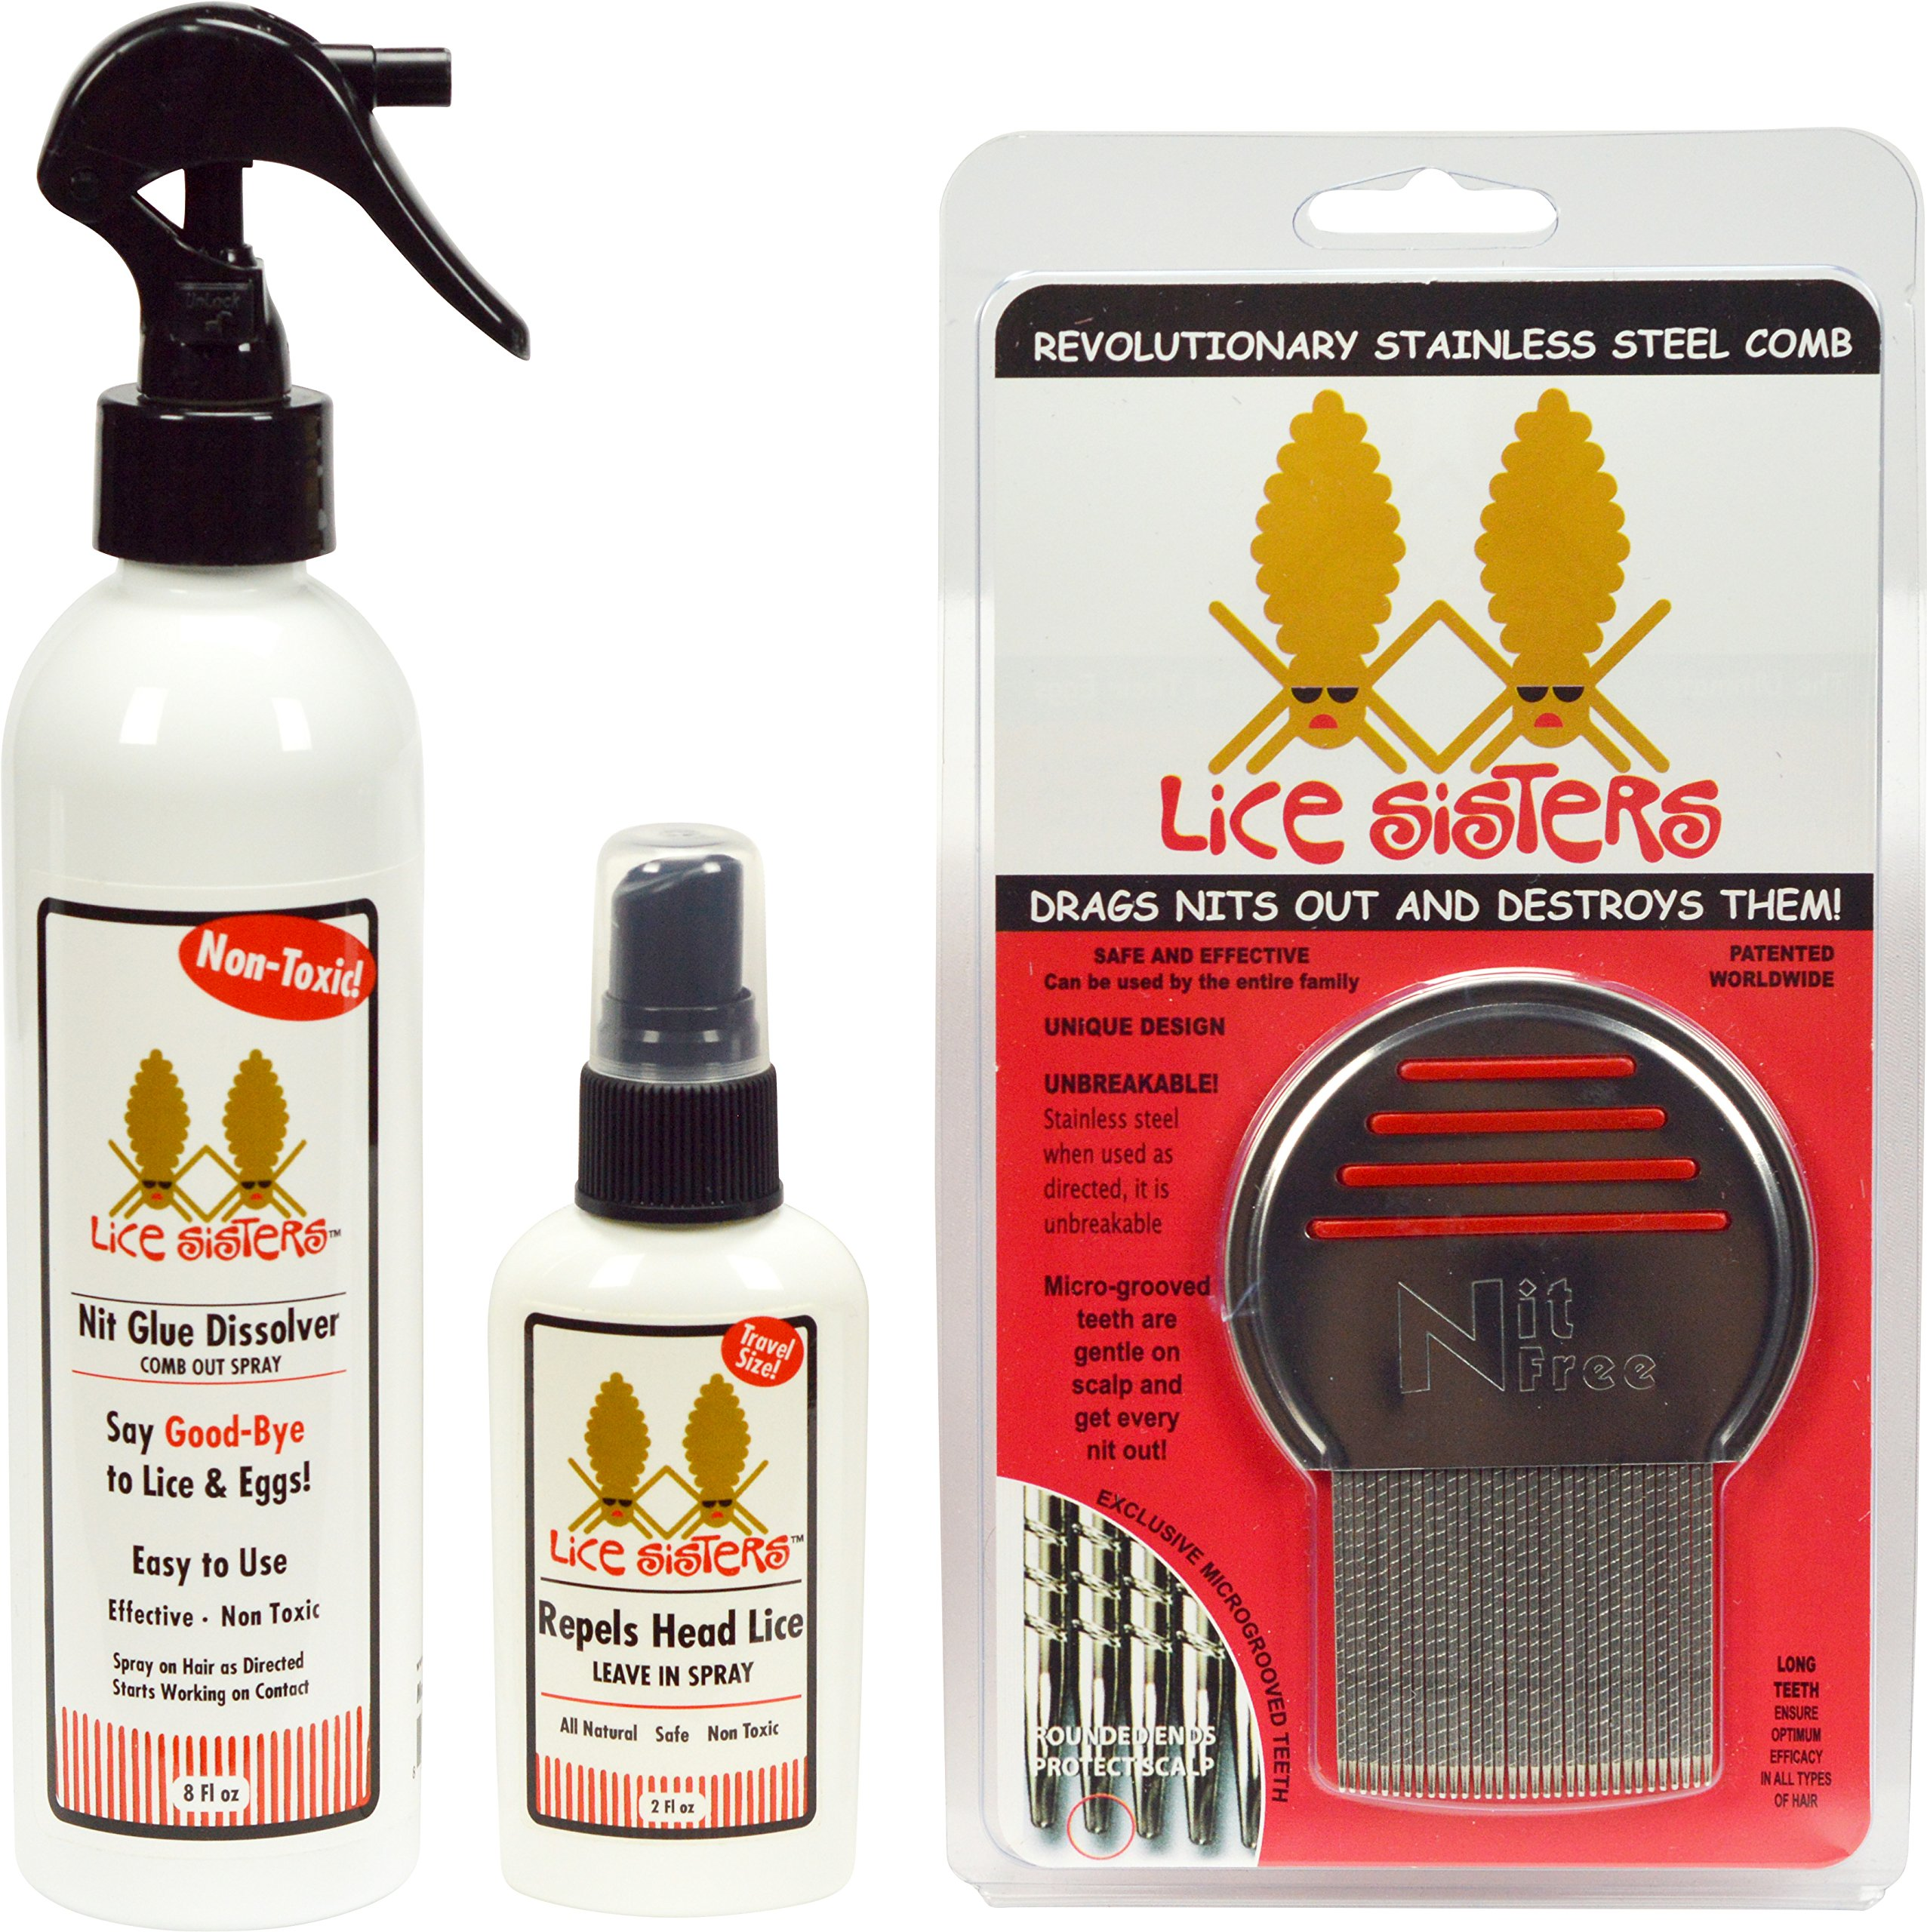 Lice Sisters Lice Treatment and Prevention Kit, Large - Nit Glue Dissolver, Repel Lice Prevention Spray and Comb for Nit and Lice Free Hair by Lice Sisters